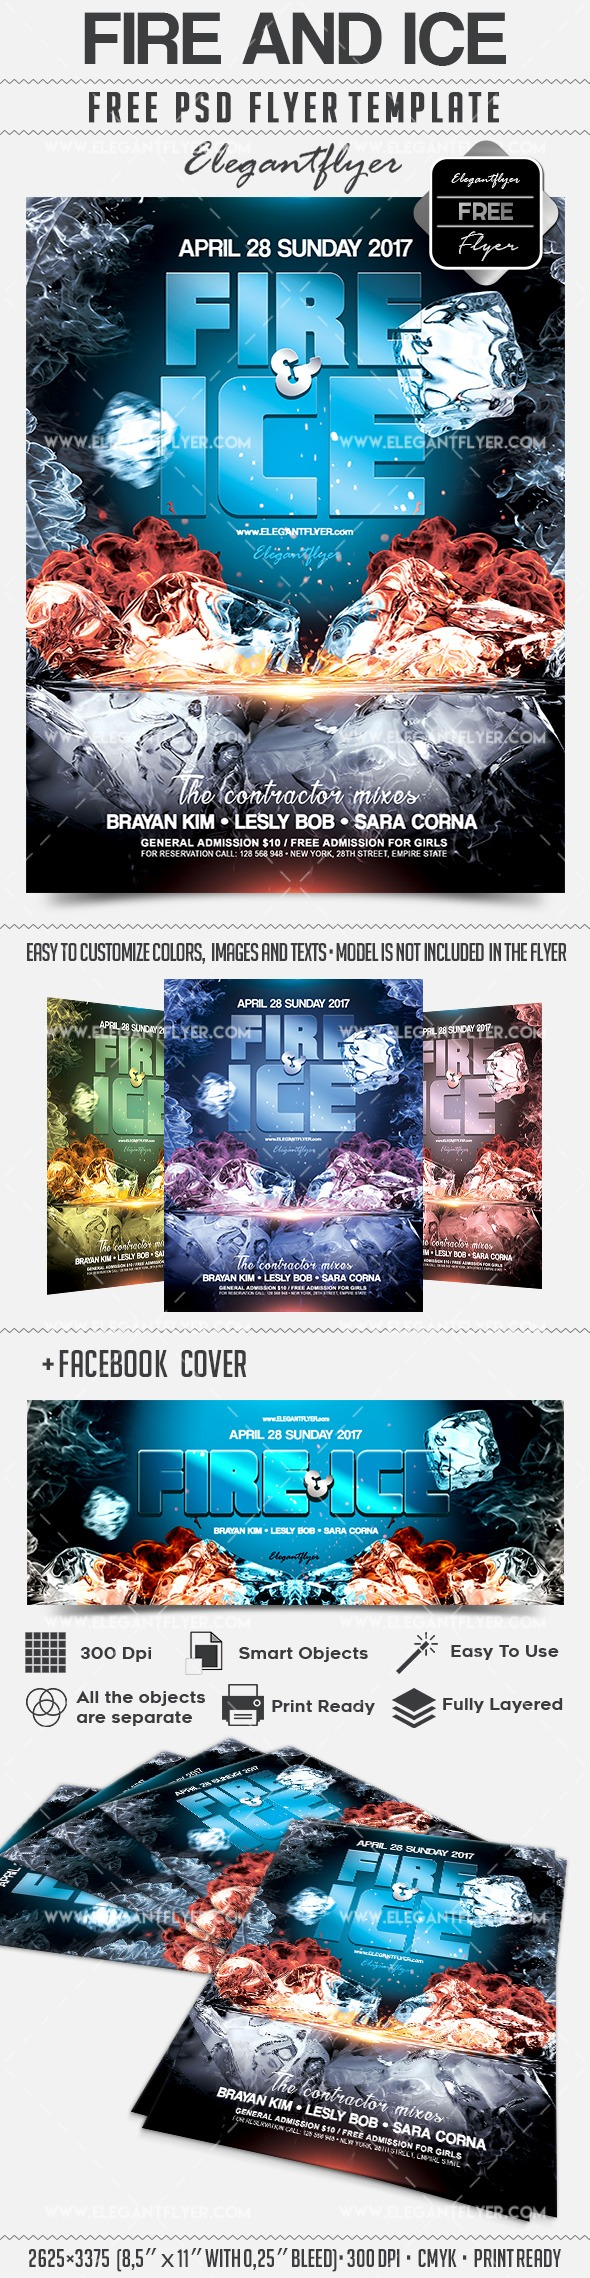 Fire and Ice – Free Flyer PSD Template